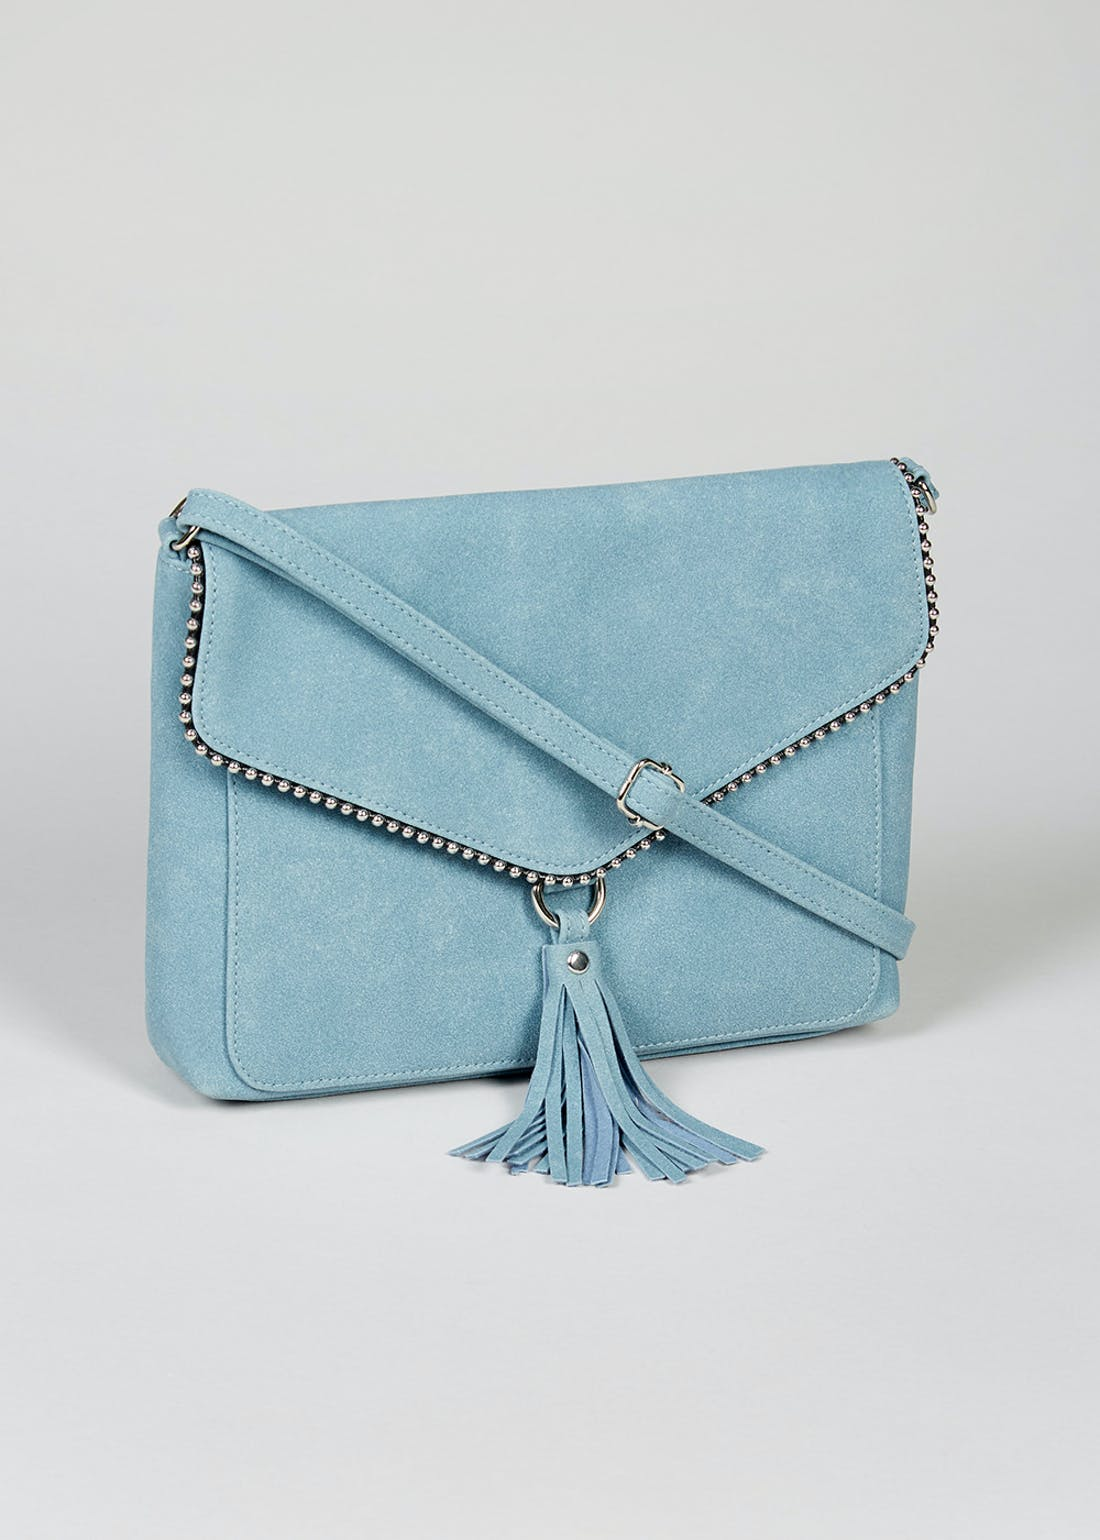 Tassel Envelope Cross-Body Bag